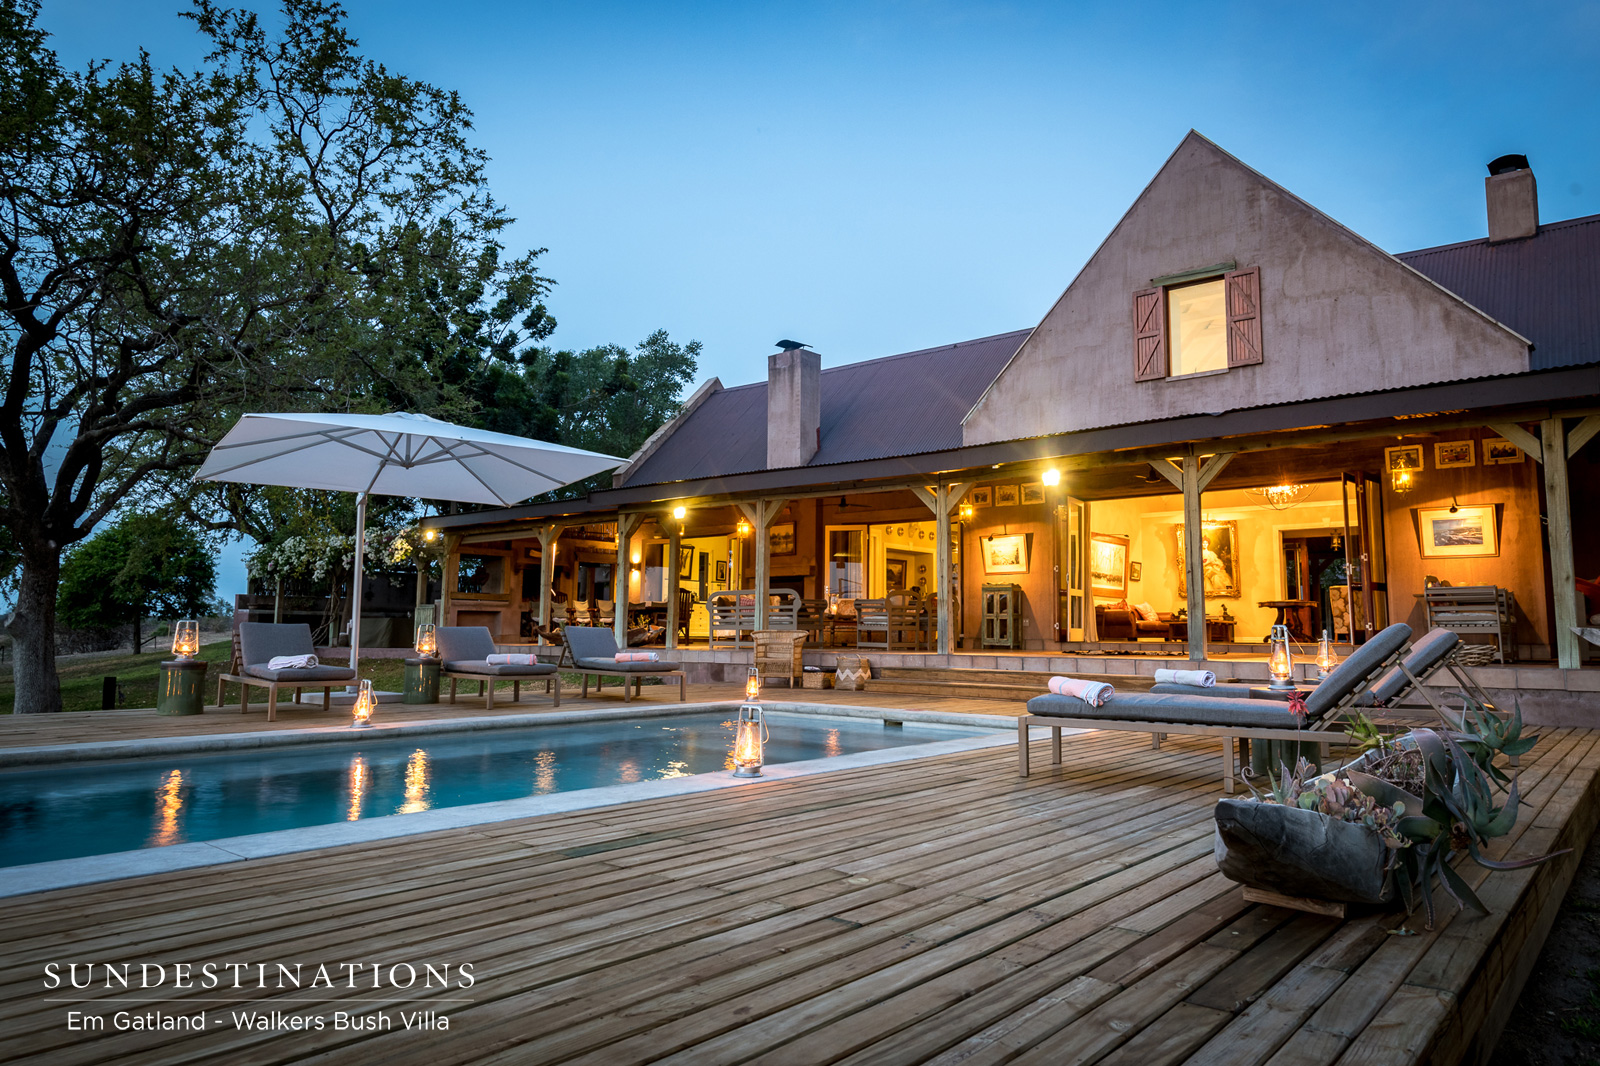 #GuestSafariReview : An Honour to Stay at Walkers Bush Villa